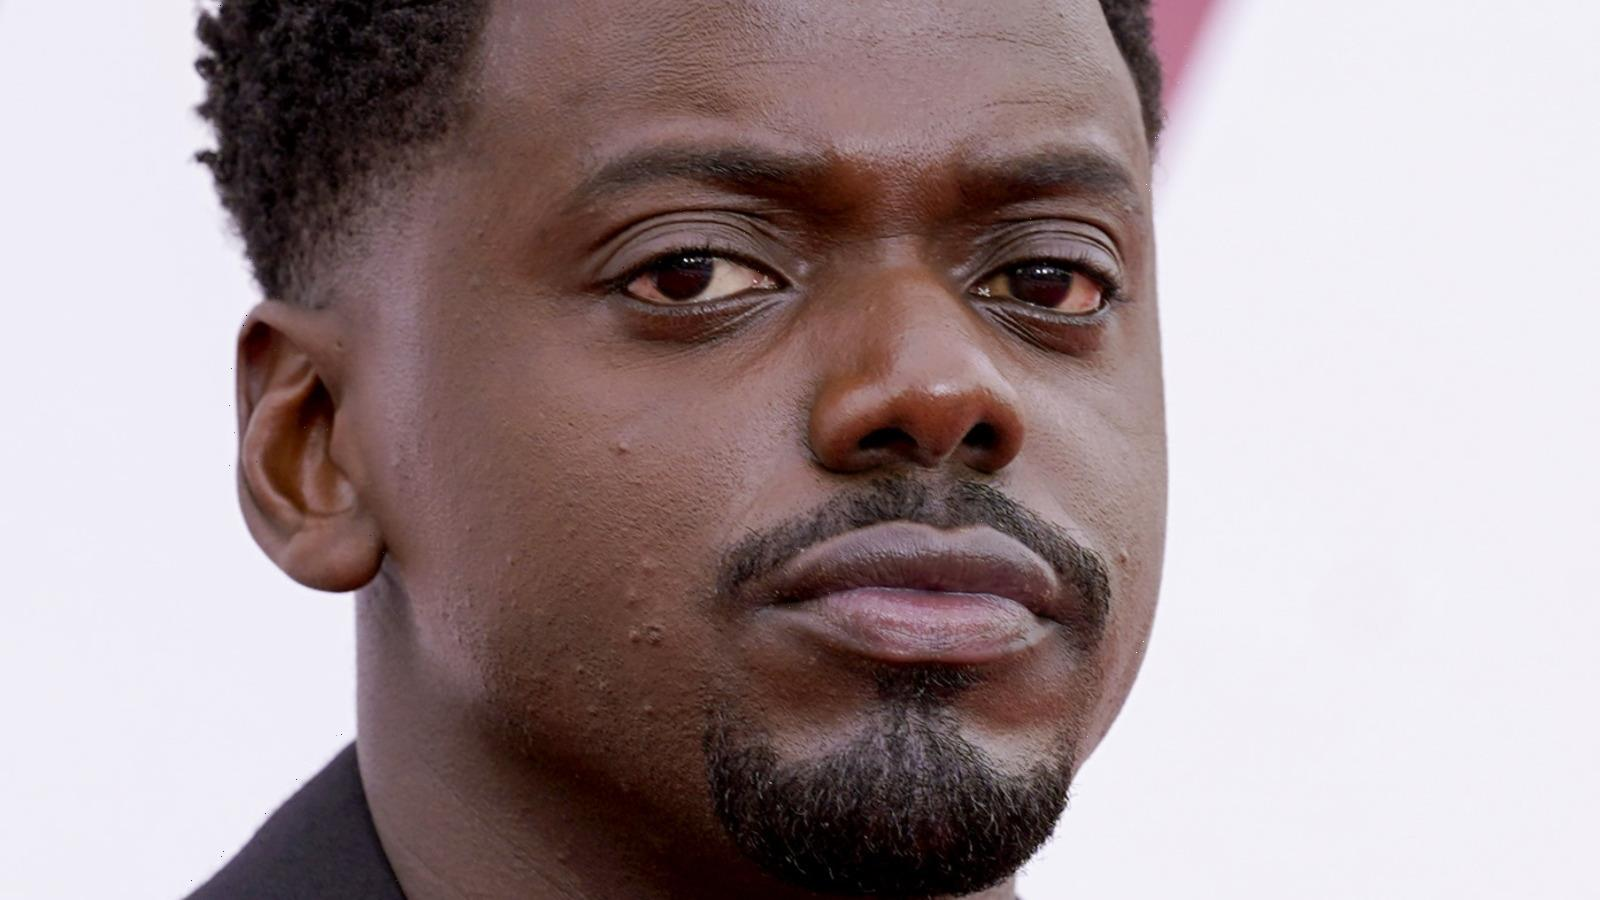 Why Daniel Kaluuya's Oscar Win Over LaKeith Stanfield Has Fans So Furious